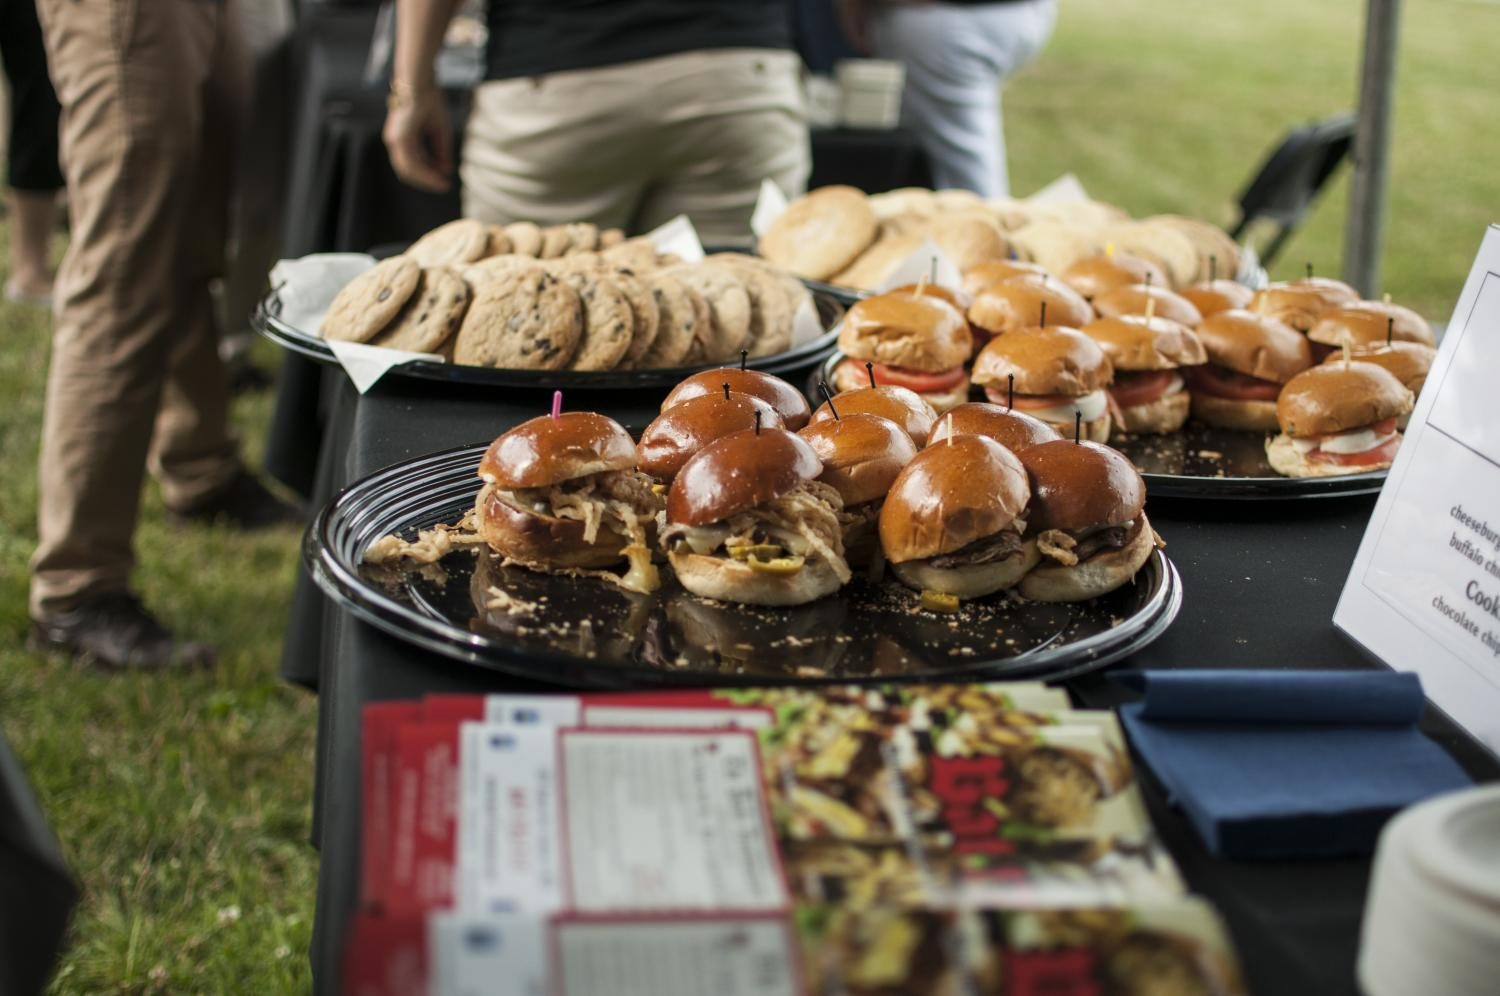 Sandwiches+and+cookies+sit+on+a+table+outside+the+Evanston+History+Center.+Evanston+residents+sampled+food+from+numerous+local+restaurants+at+the+Taste+of+Evanston+event+on+Sunday.